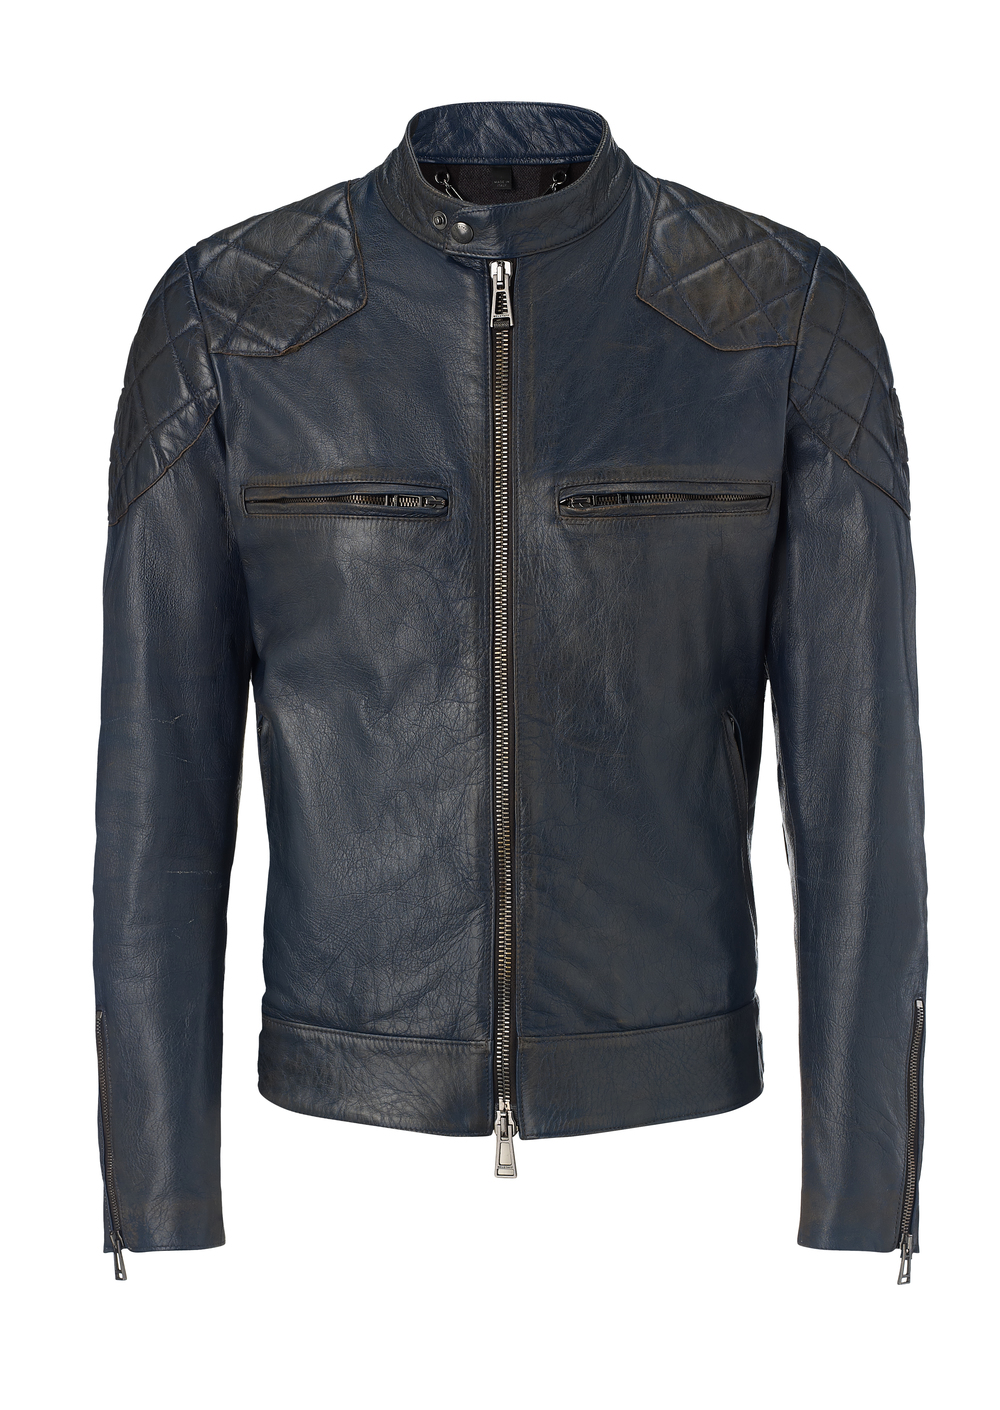 Beckham for Belstaff_Stannard Blouson_Racing Blue_1.jpg